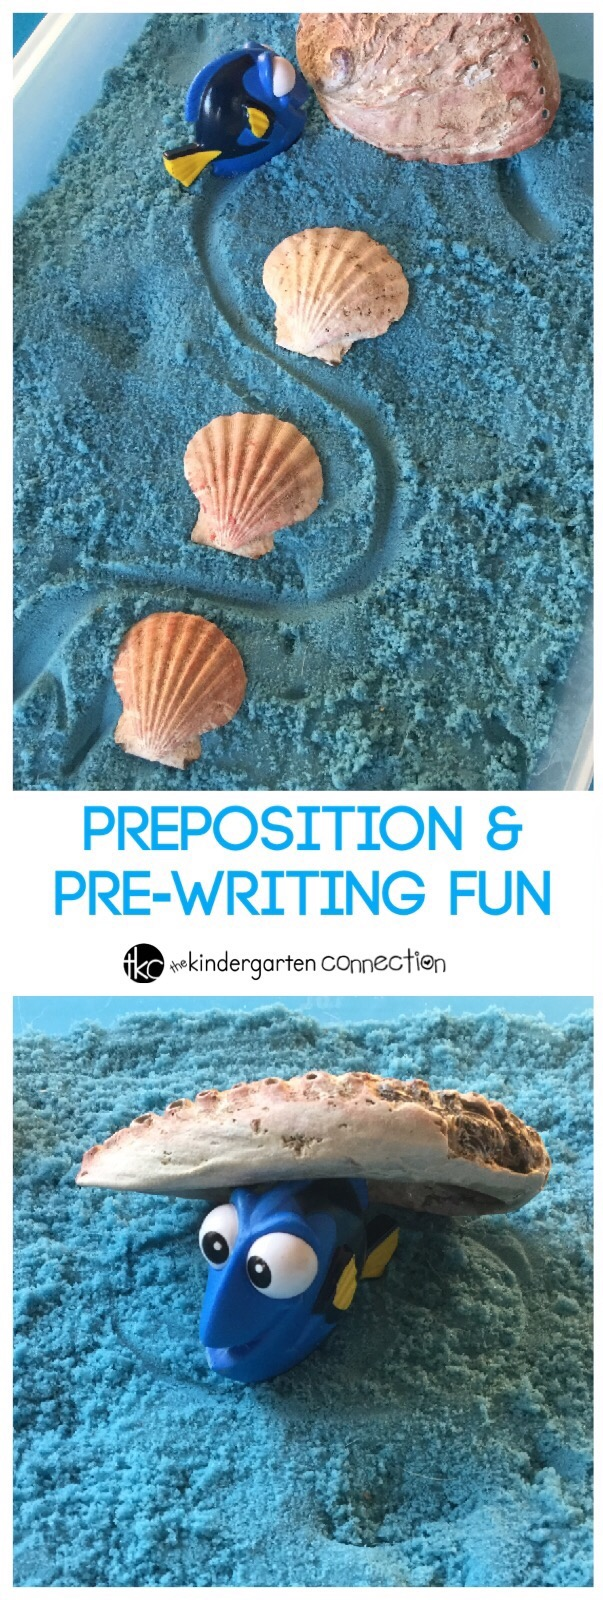 This preposition and prewriting activity is super fun, and even uses favorite toys. Just add a sensory bin for lots of learning fun!